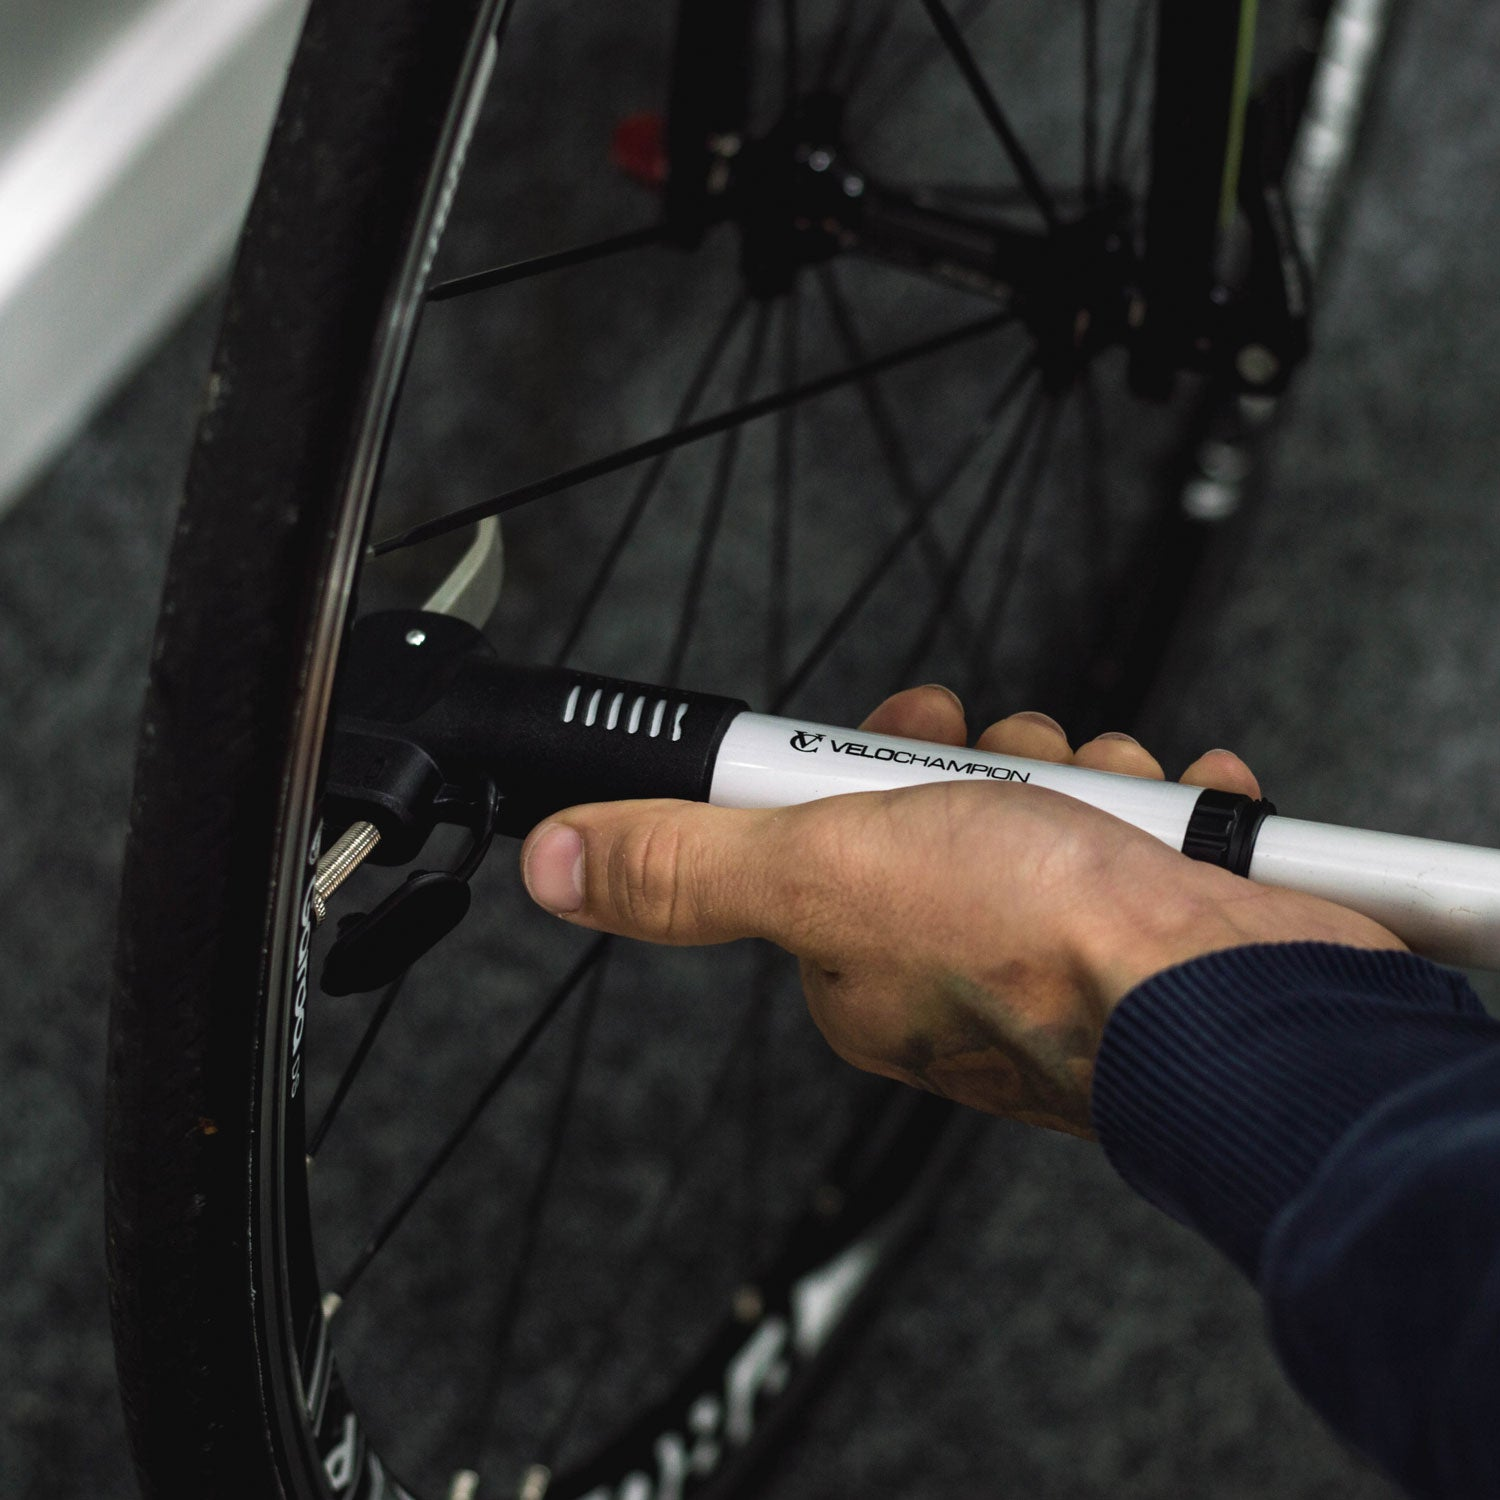 VeloChampion Pro Airblast Double Shot Alloy Mini Bike Pump - Velochampion